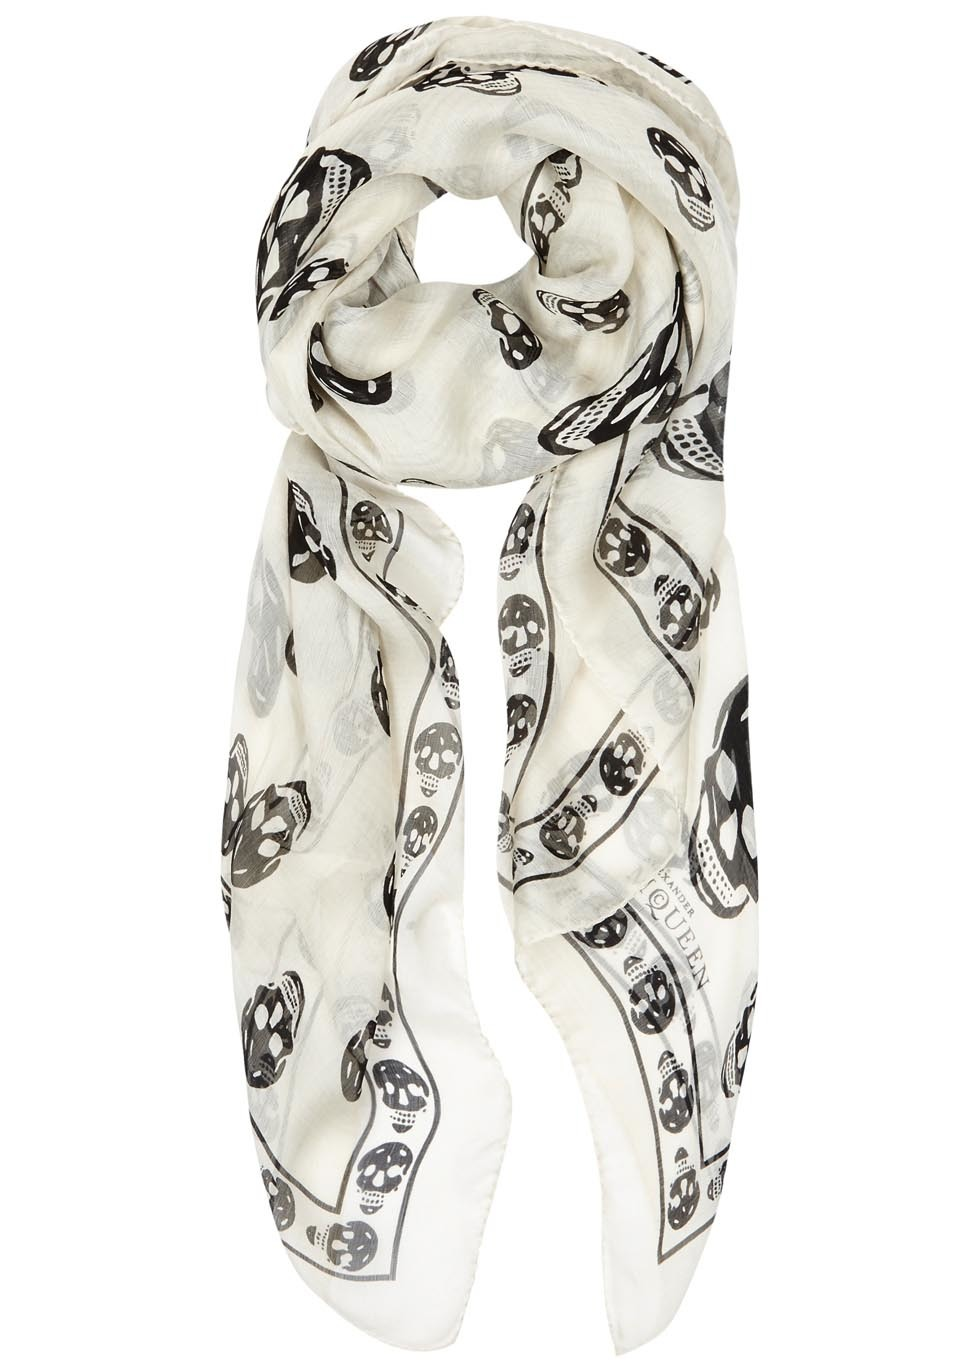 Cream Skull Print Silk Chiffon Scarf - predominant colour: white; secondary colour: black; occasions: casual; type of pattern: light; style: square; size: standard; material: silk; pattern: patterned/print; multicoloured: multicoloured; season: a/w 2016; wardrobe: highlight